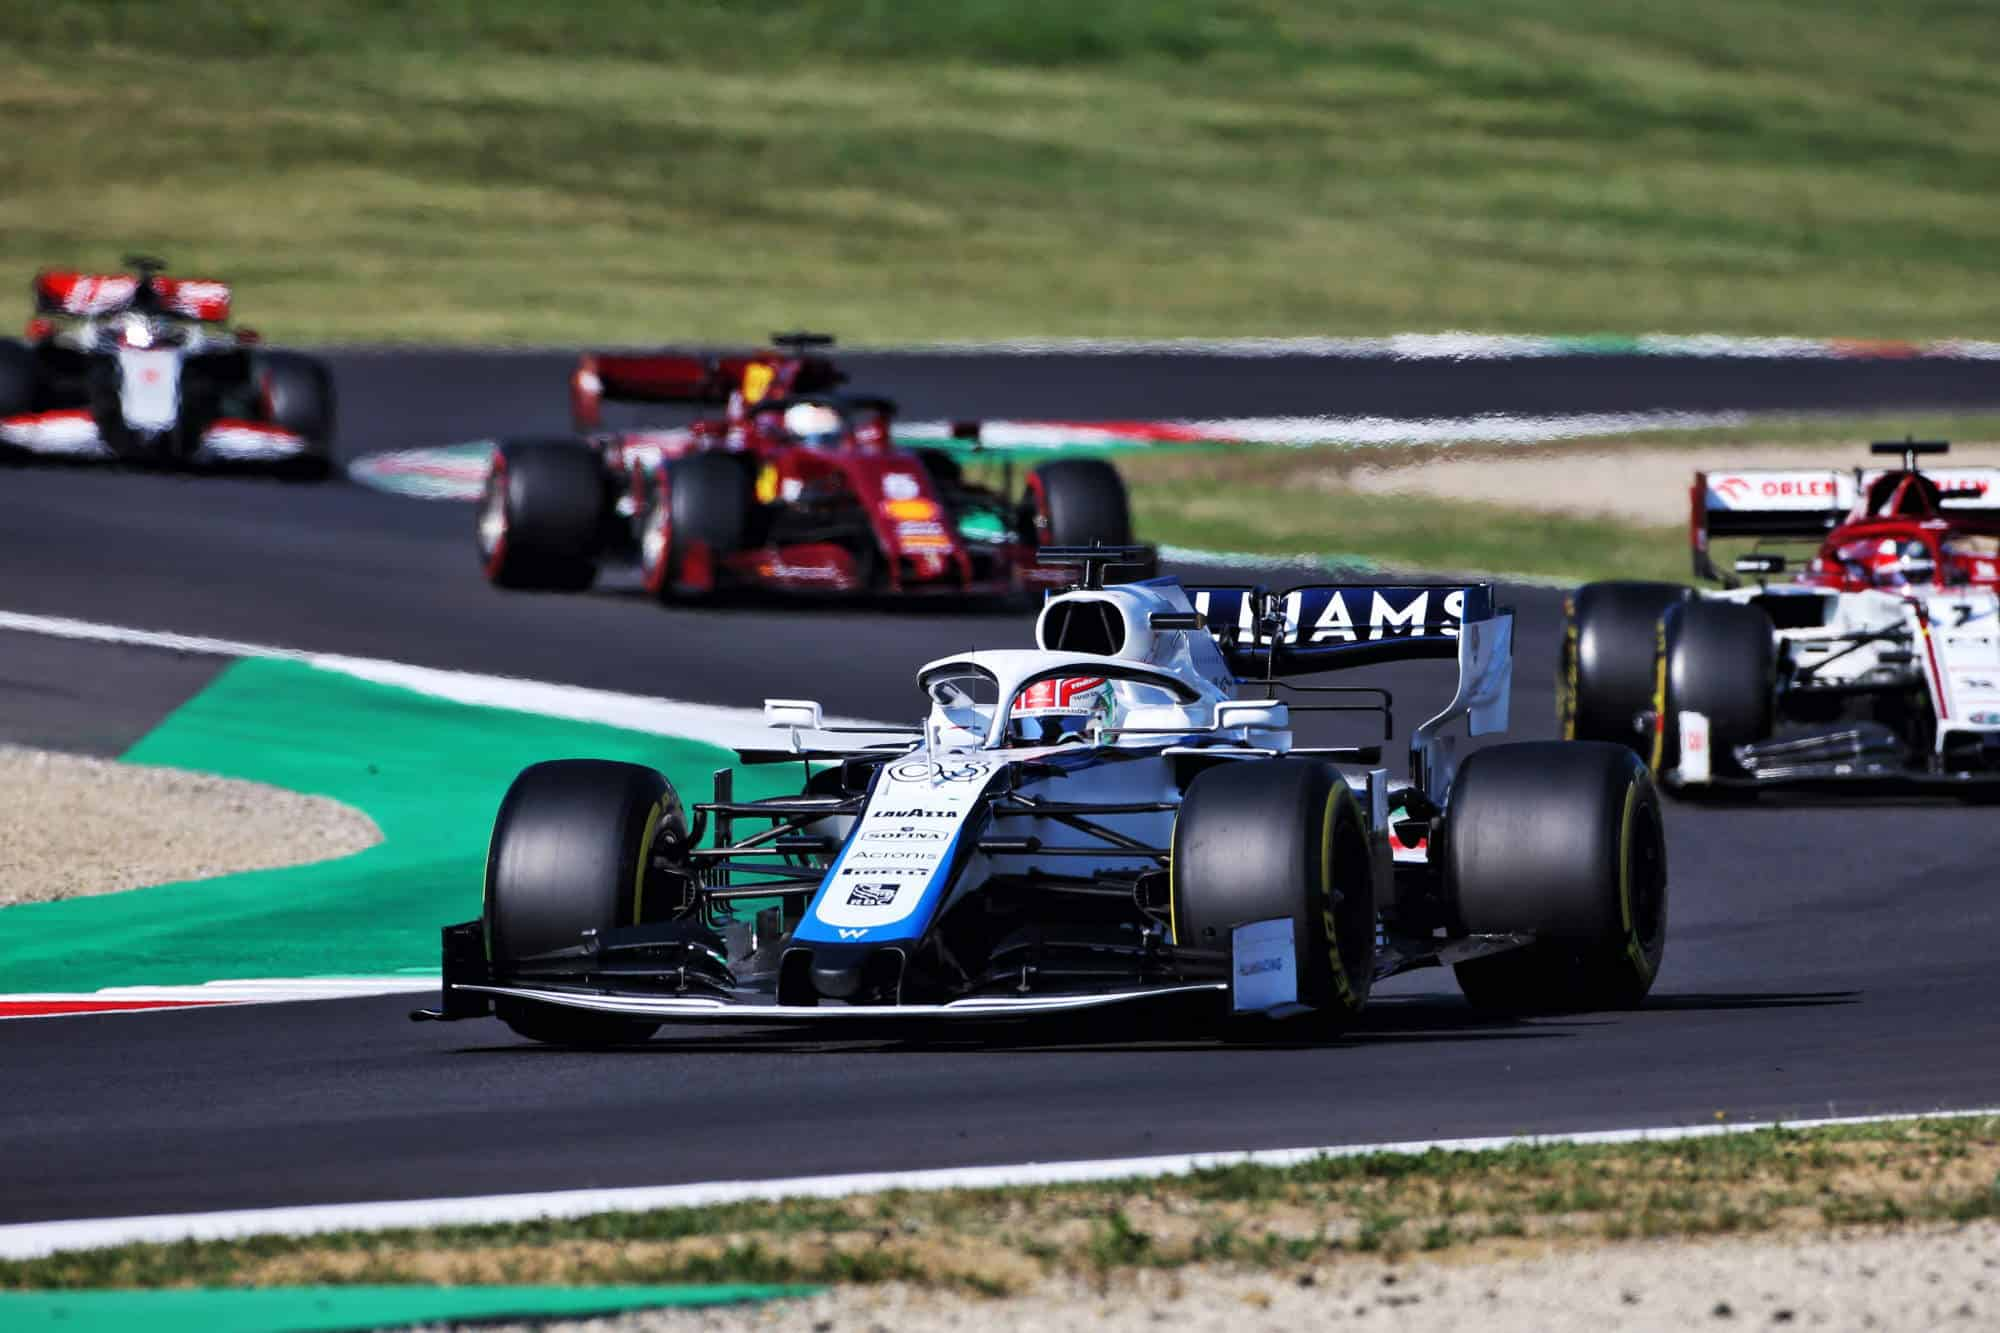 2020 Tuscany GP Russell leads Raikkonen Vettel Grosjean Photo Williams